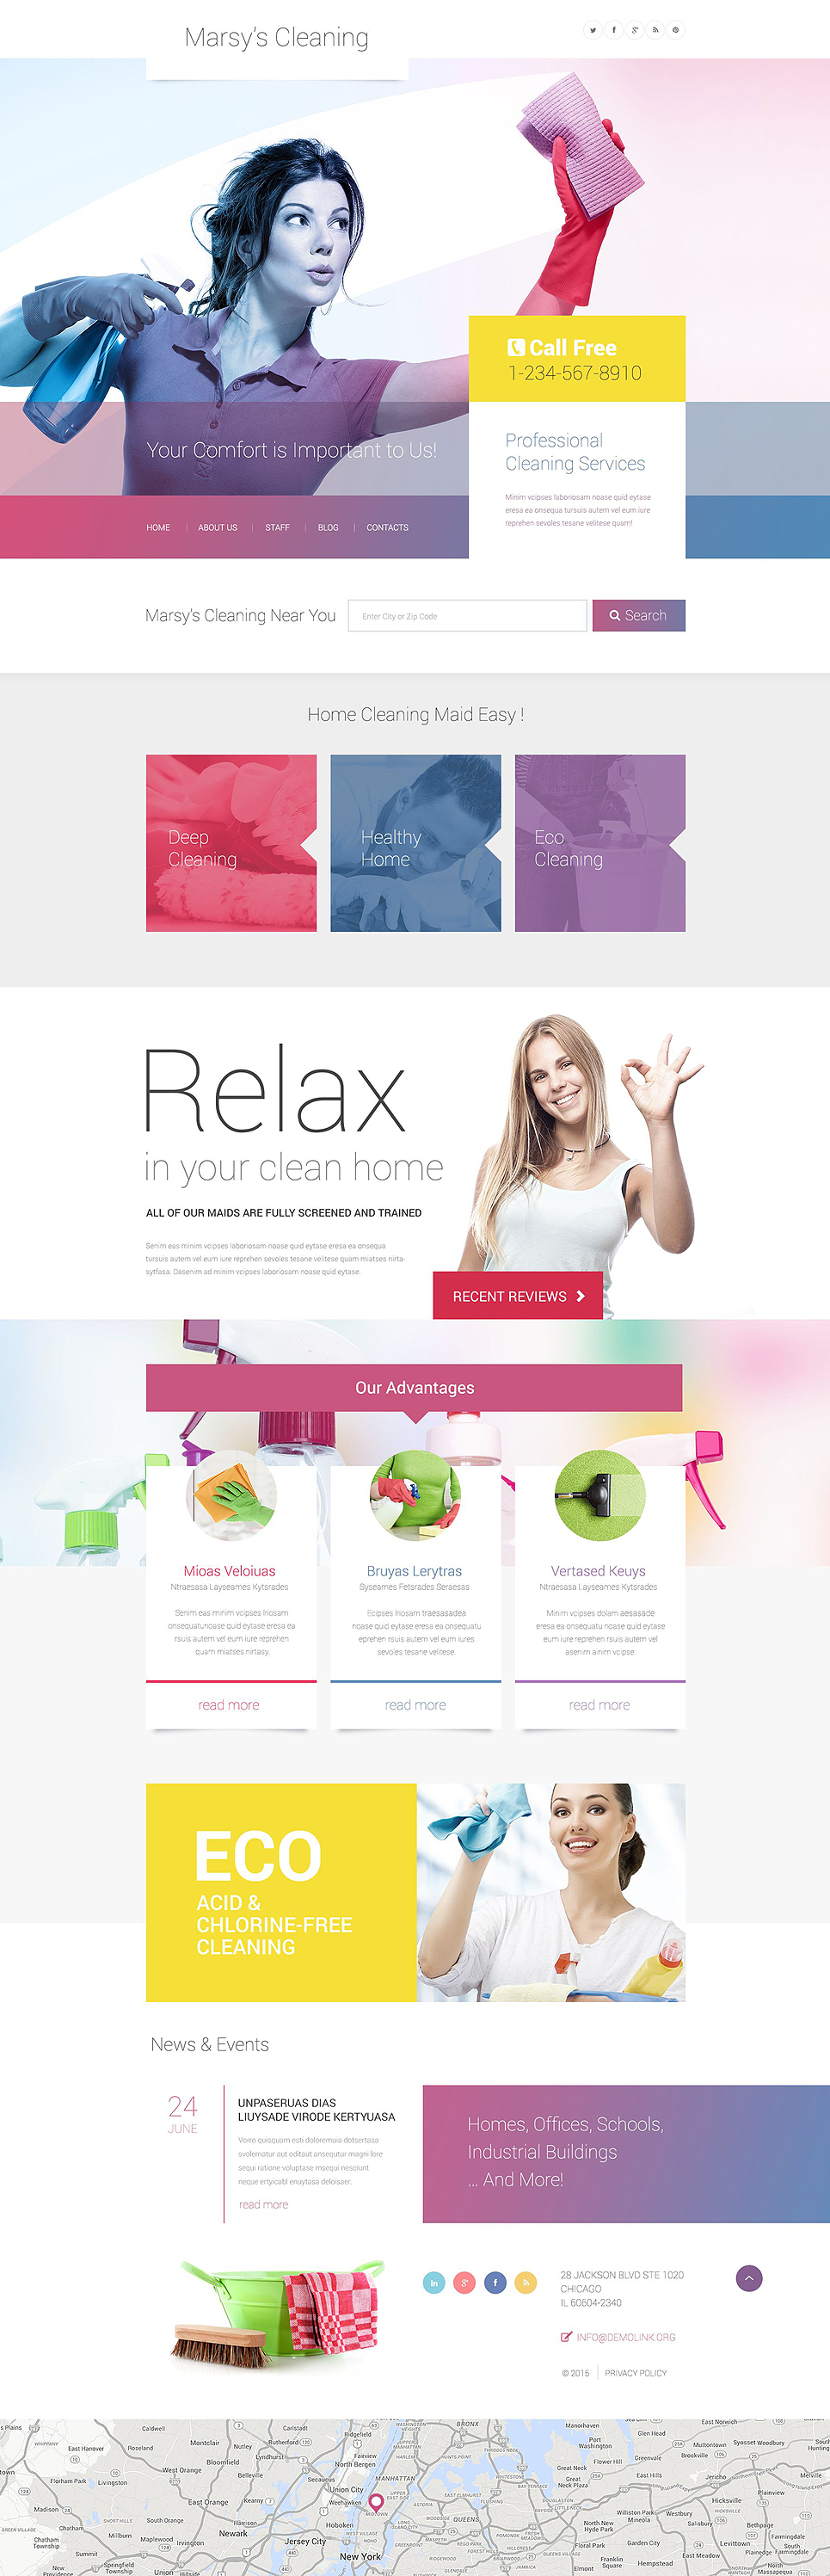 Marsy's Cleaning WordPress Theme (maid service WordPress theme) Item Picture